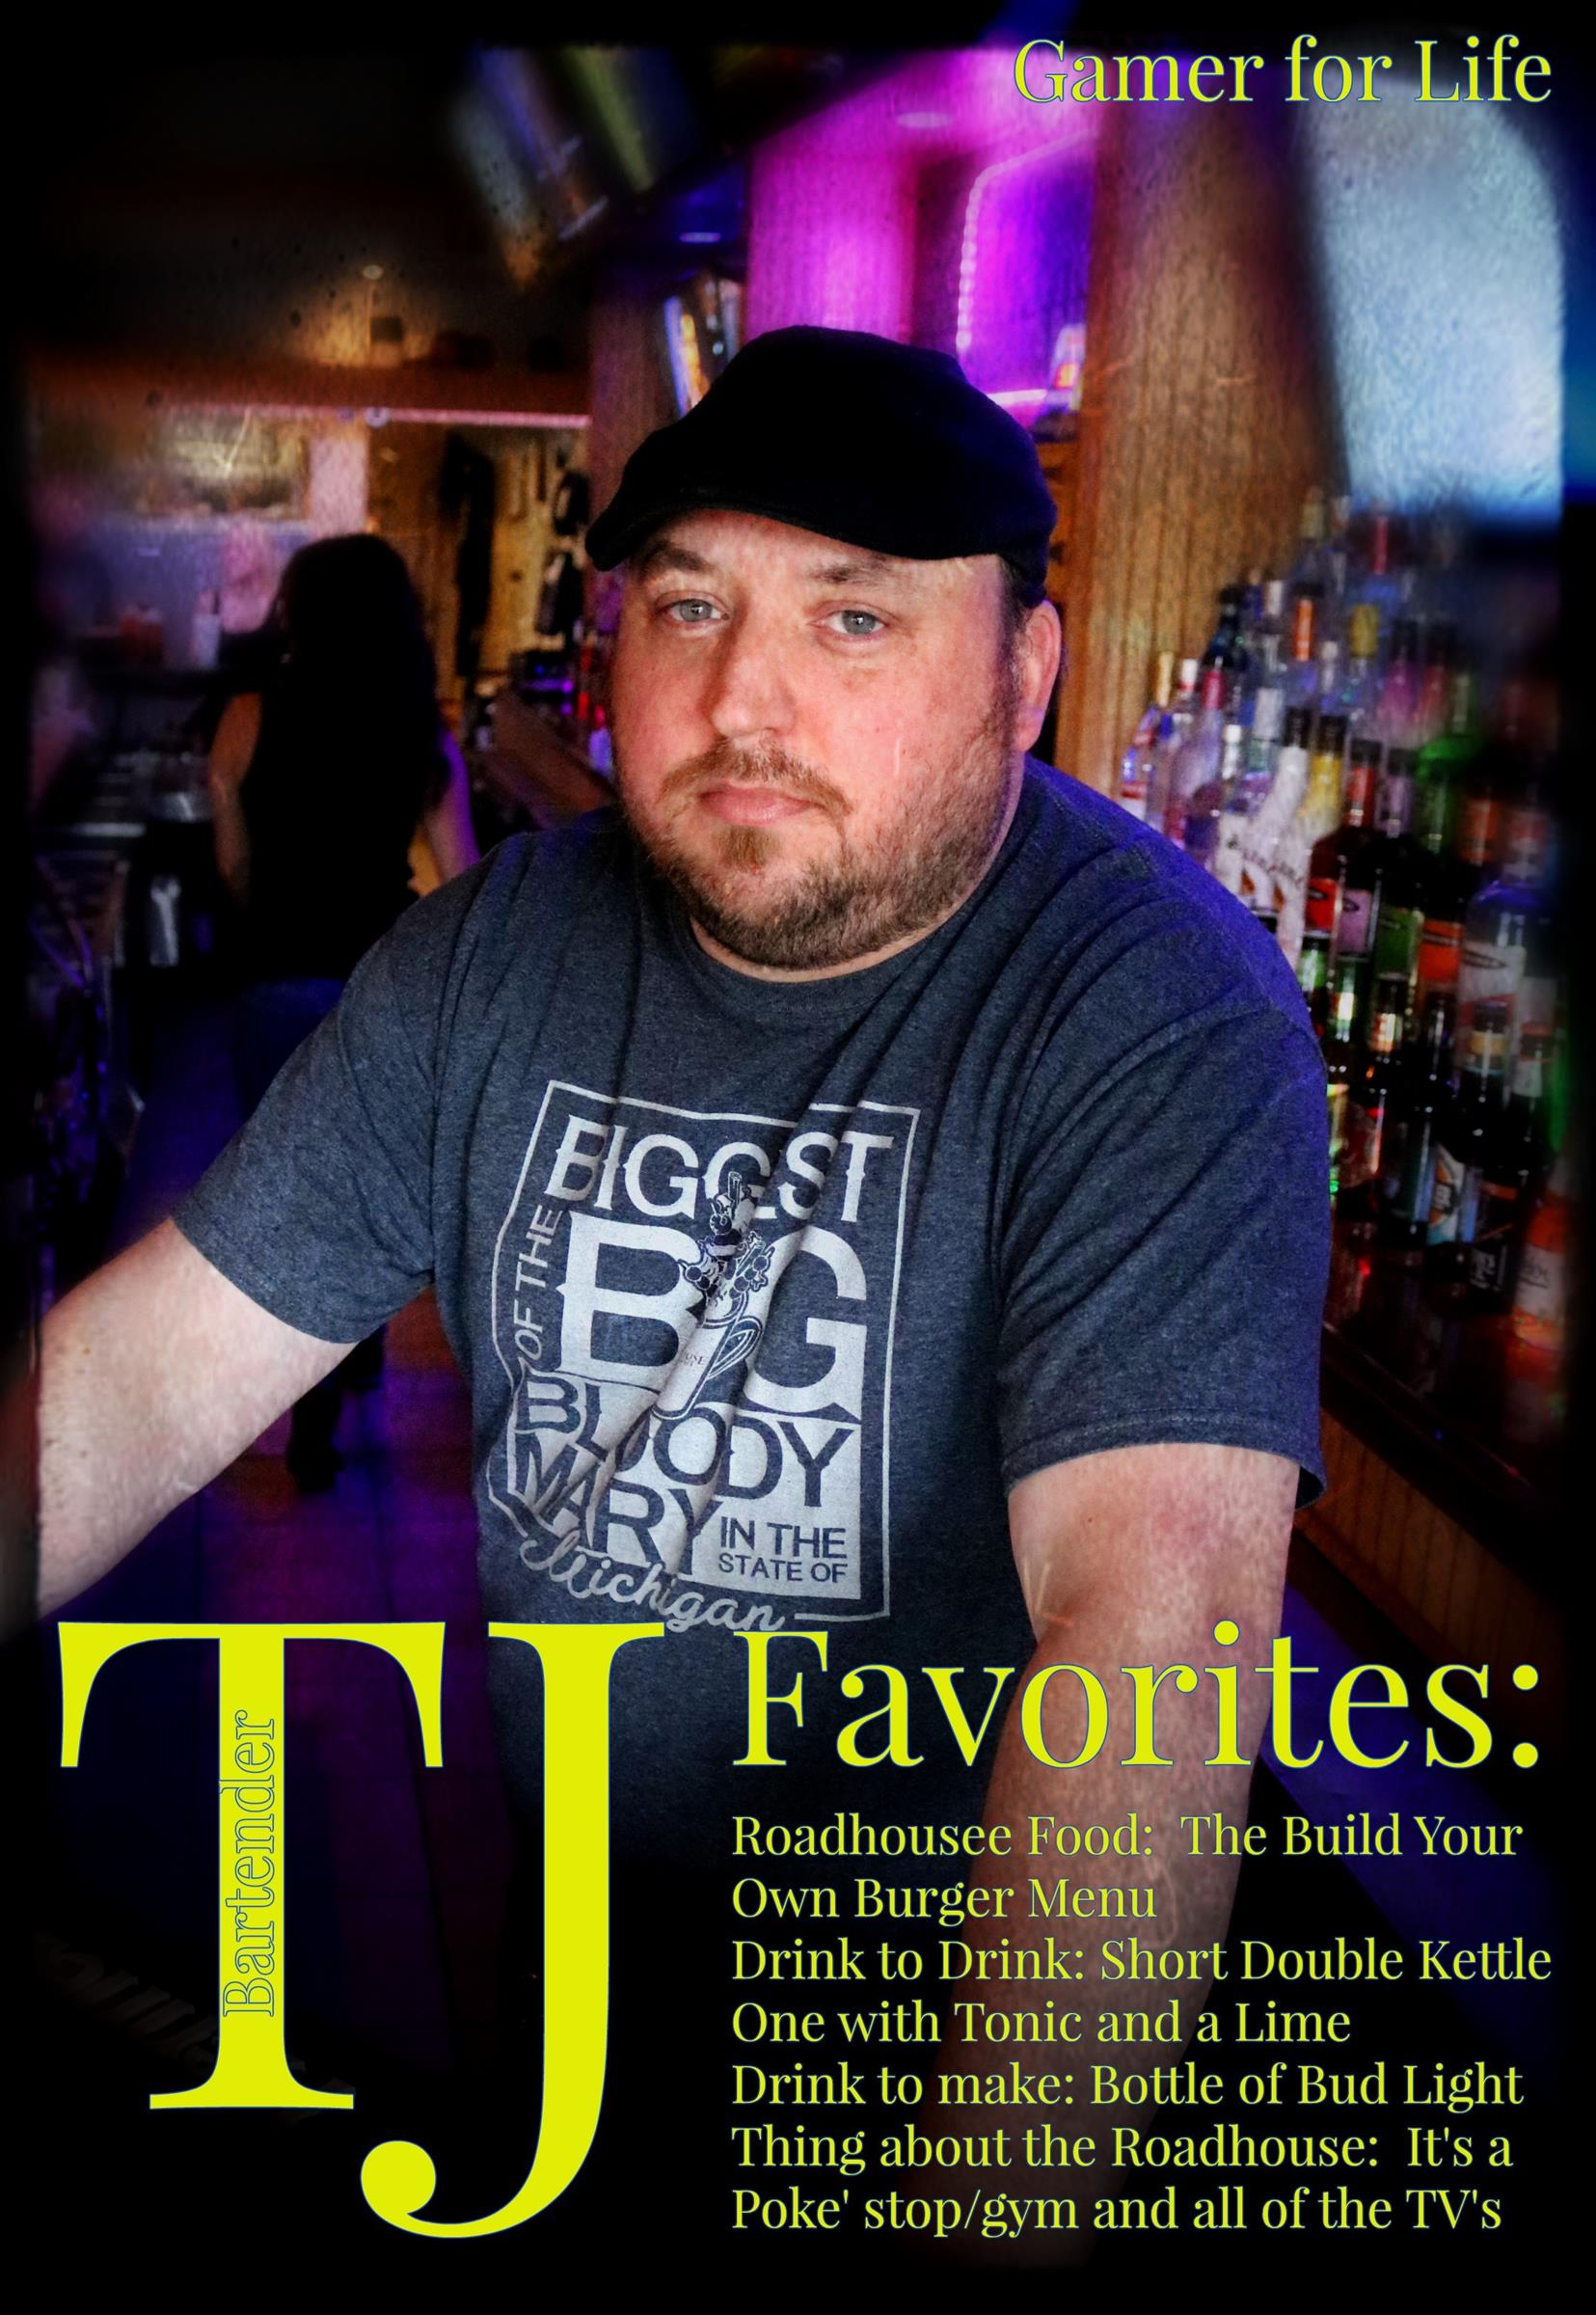 TJ. Gamer for life.  TJ Favorites: Roadhouse Food: The build your own burger menu. Drink to drink: short double kettle one with tonic and a lime.  Drink to make: bottle of bud light.  Thing about the roadhouse: it's a poke' stop/gym and all of the TV's